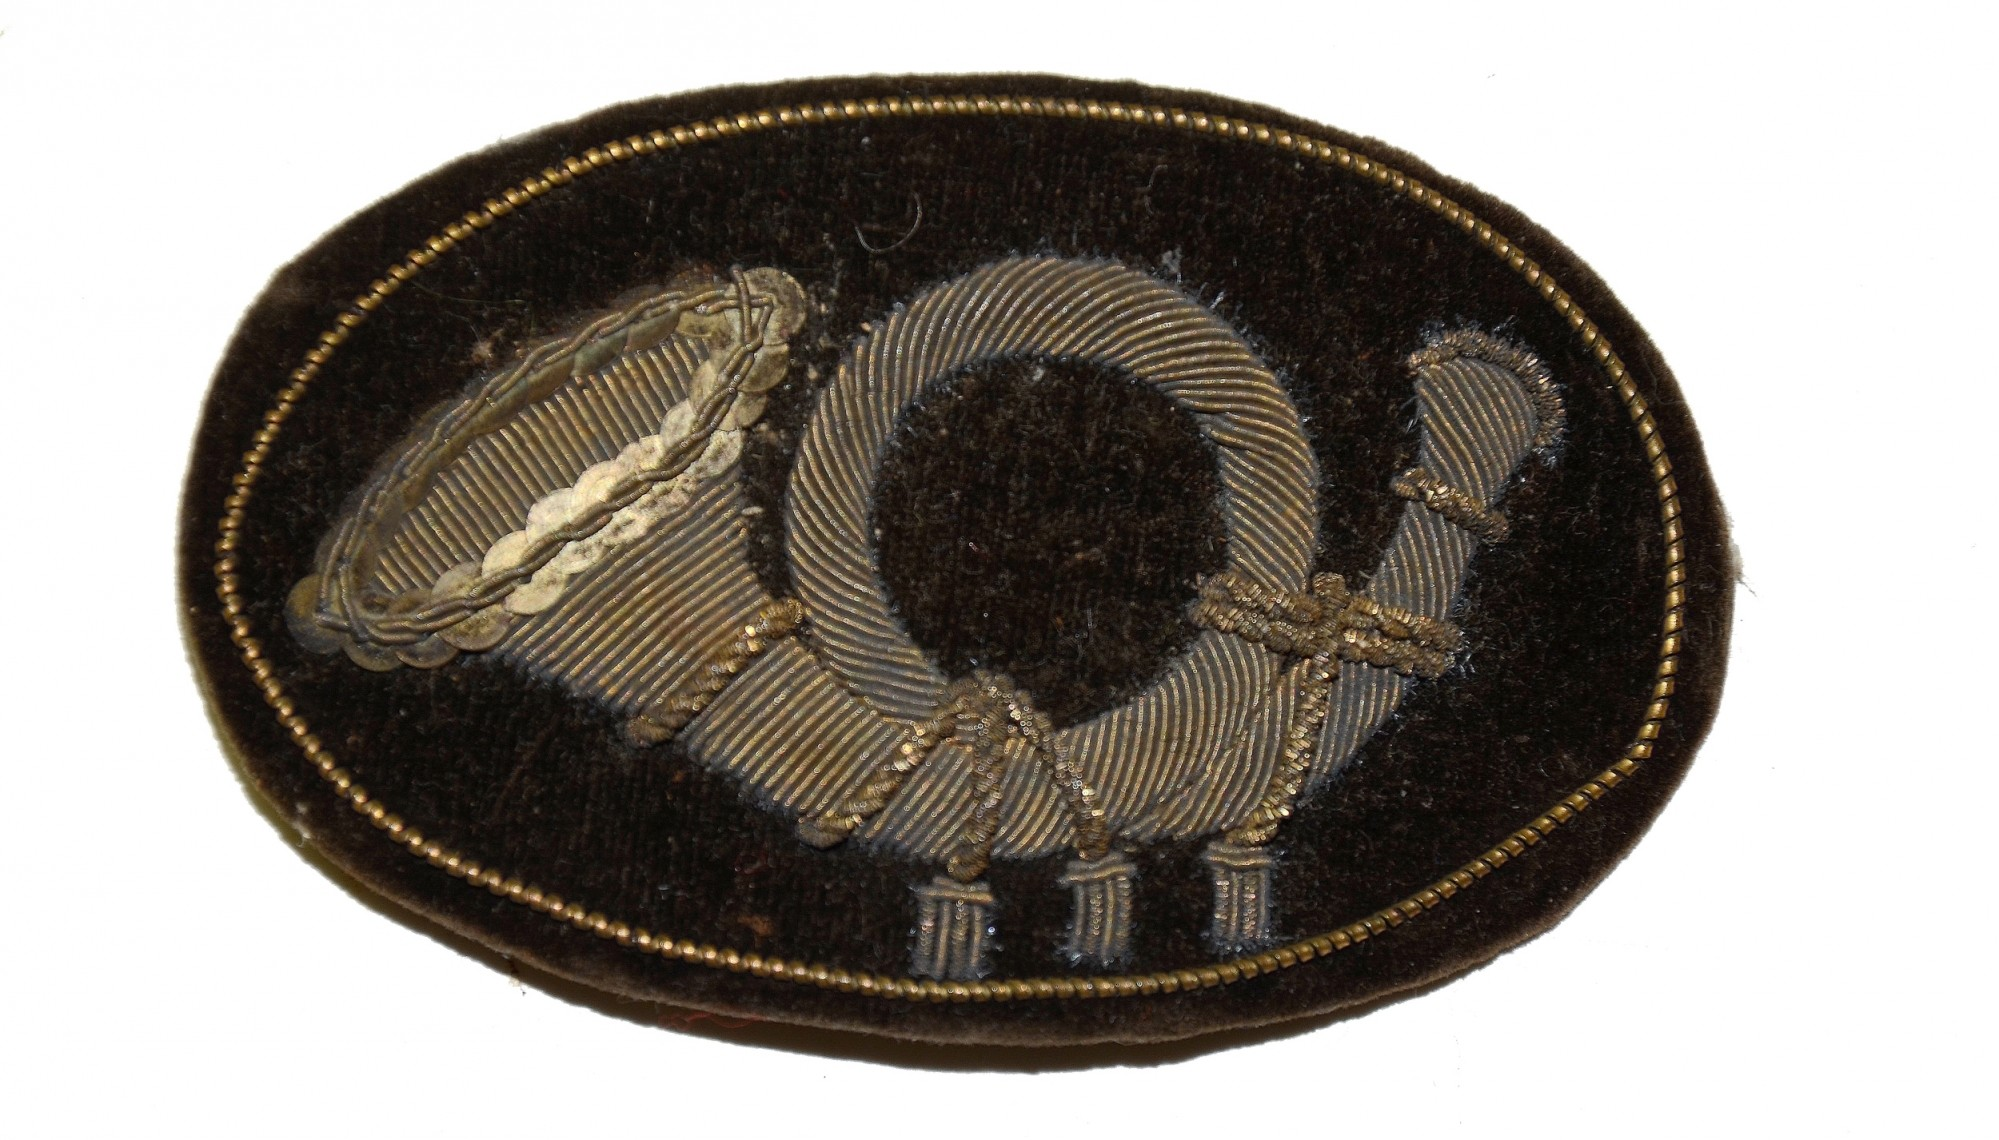 CIVIL WAR INFANTRY OFFICER'S HAT INSIGNIA